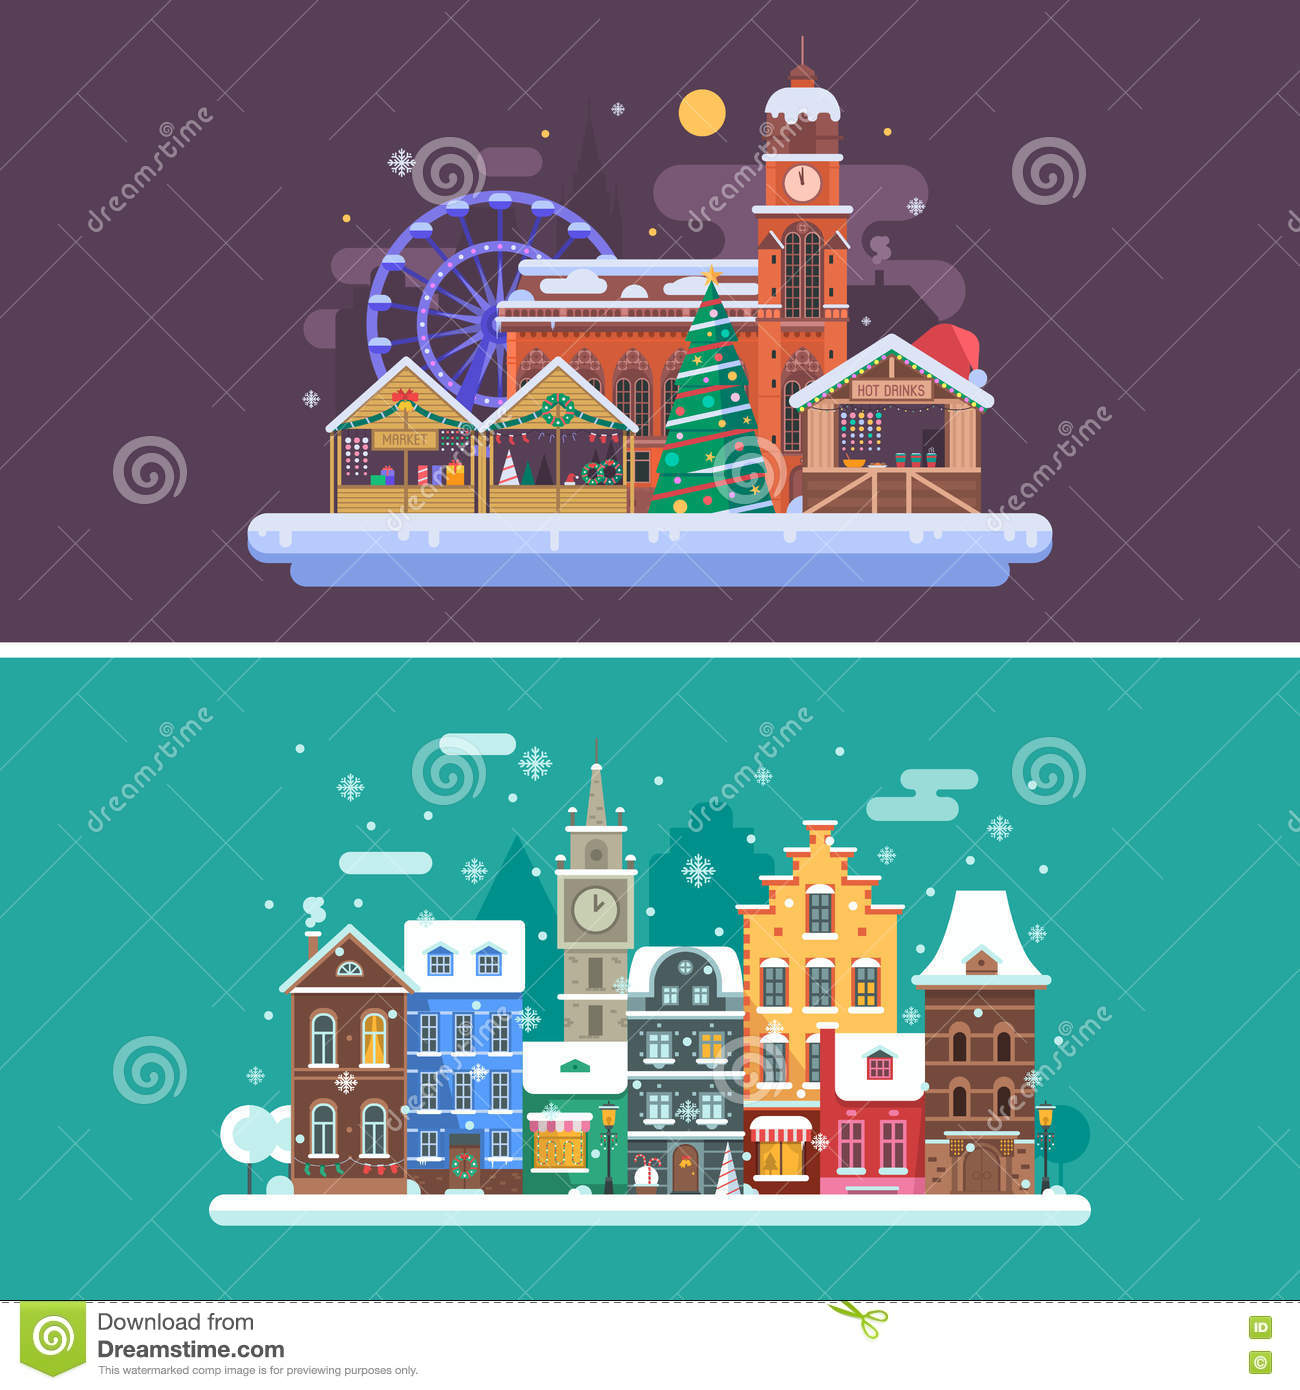 Town Landscape Vector Illustration: Winter City And Christmas Market Stock Vector